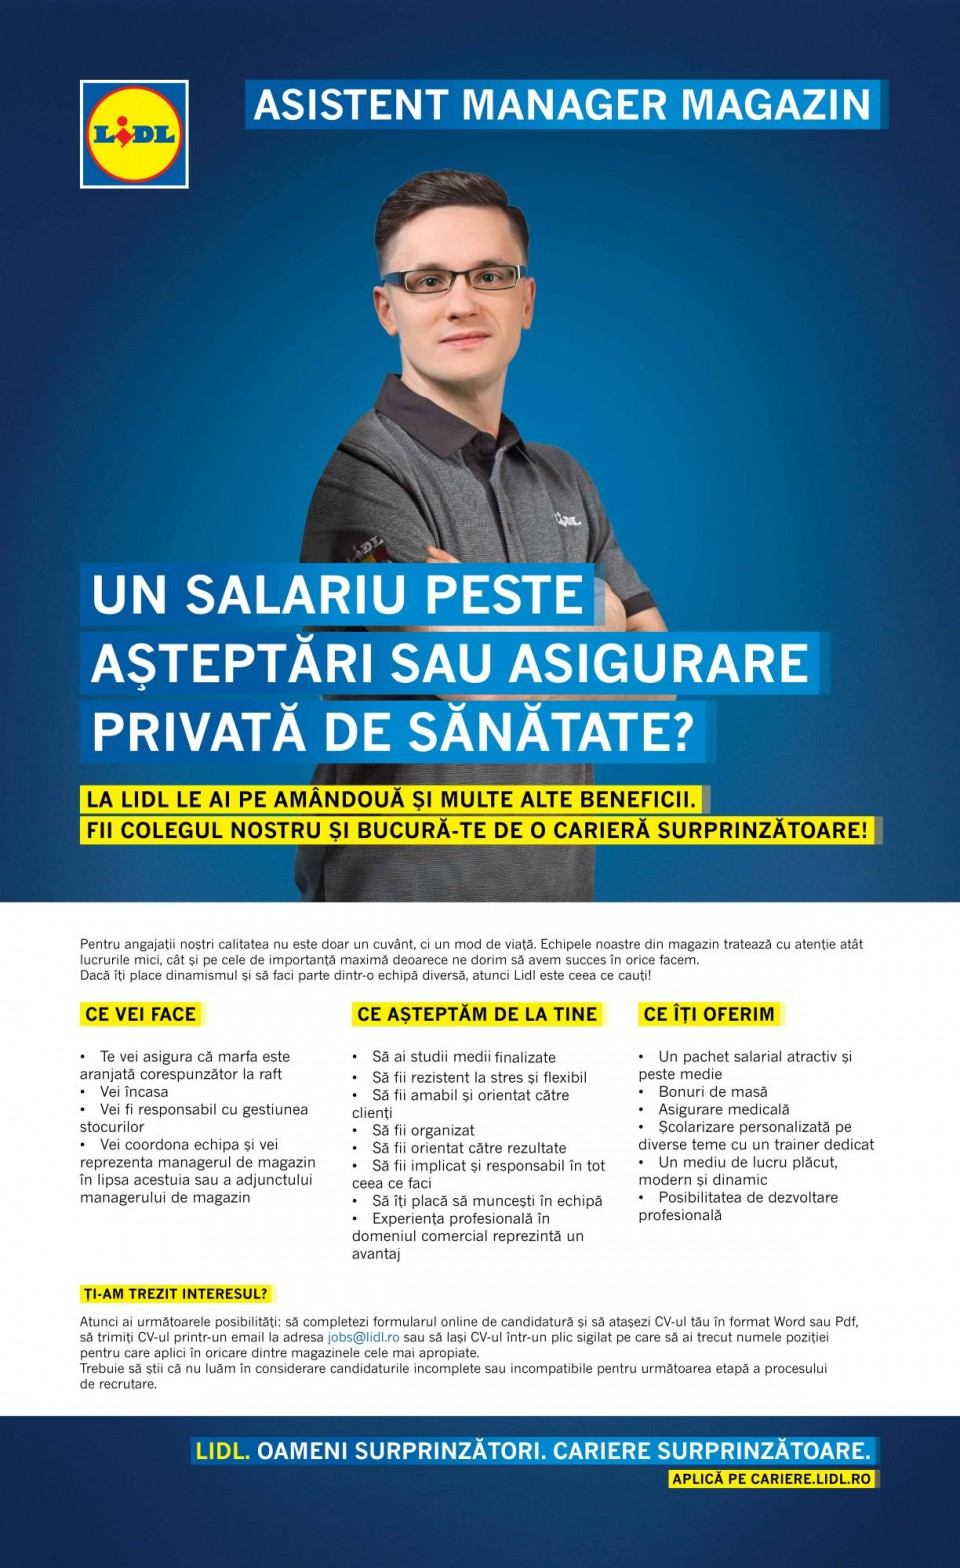 Asistent Manager Magazin Tecuci (f/m)